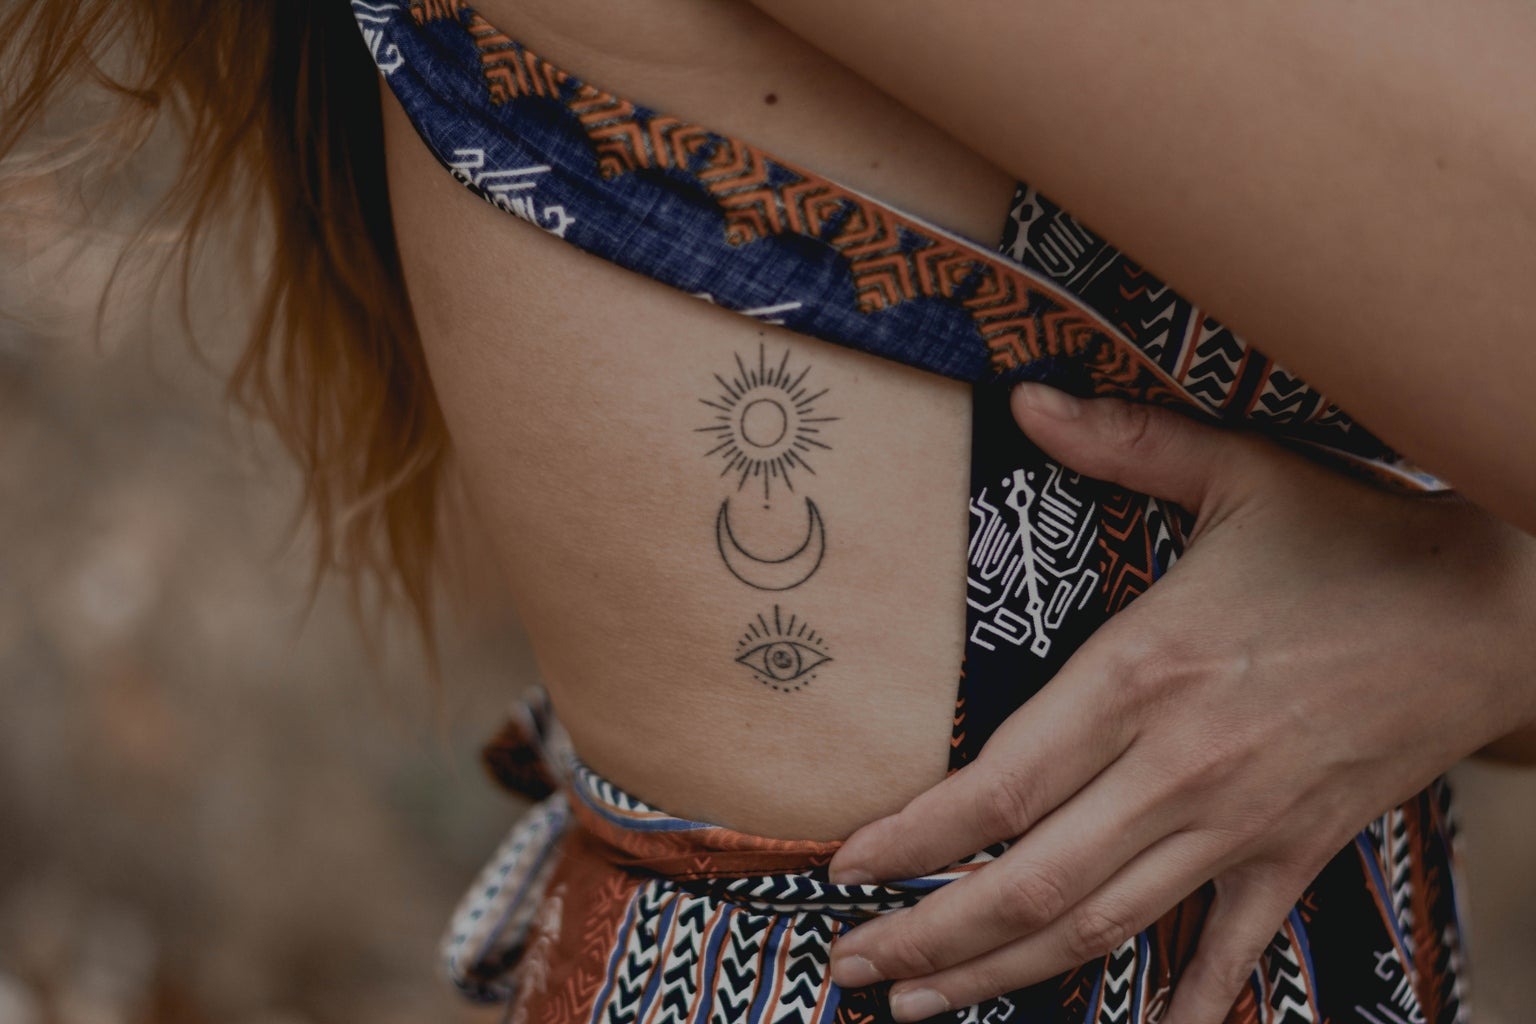 set of minimalistic tattoos on a person's ribcage